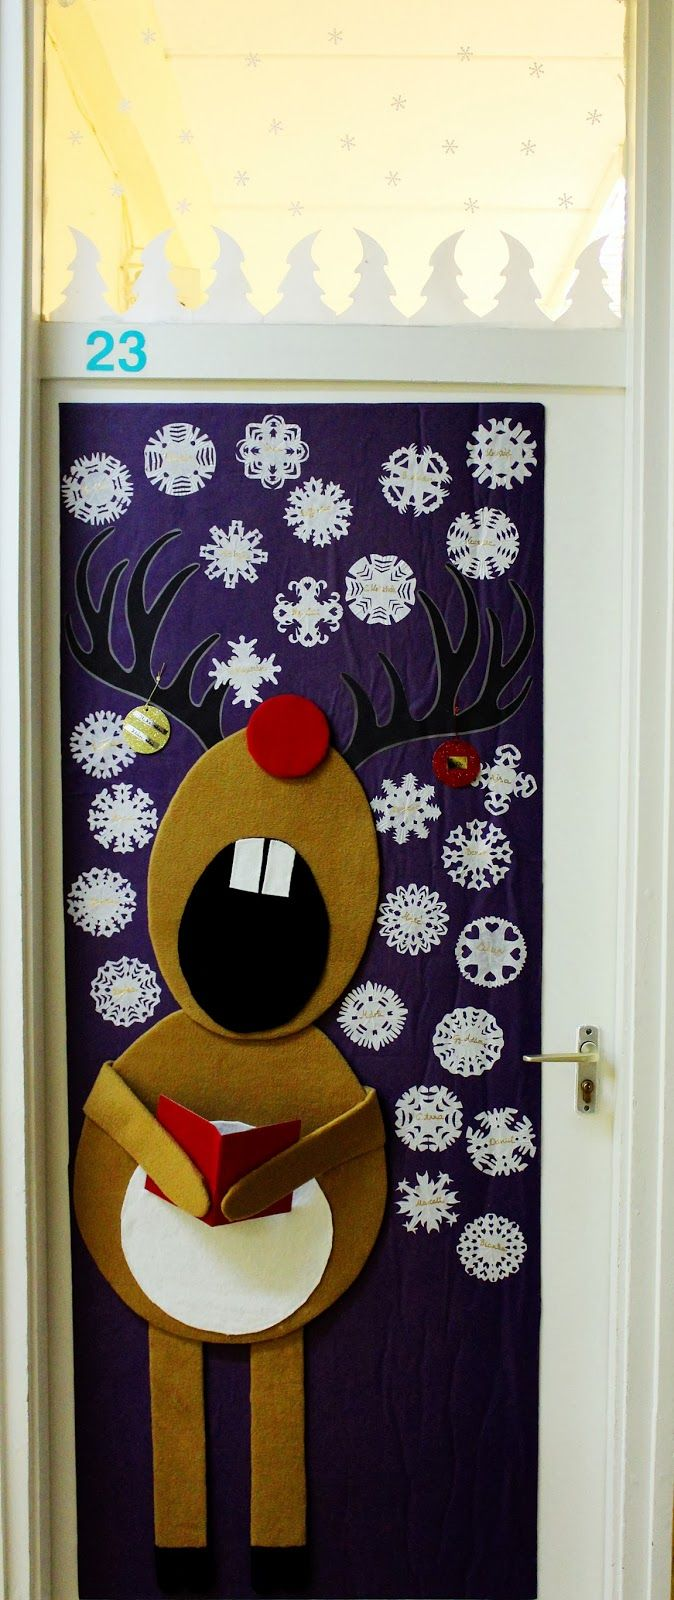 Christmas classroom door decoration ideas - Find This Pin And More On Bulletin Board And Door Ideas 50 Best Christmas Door Decoration